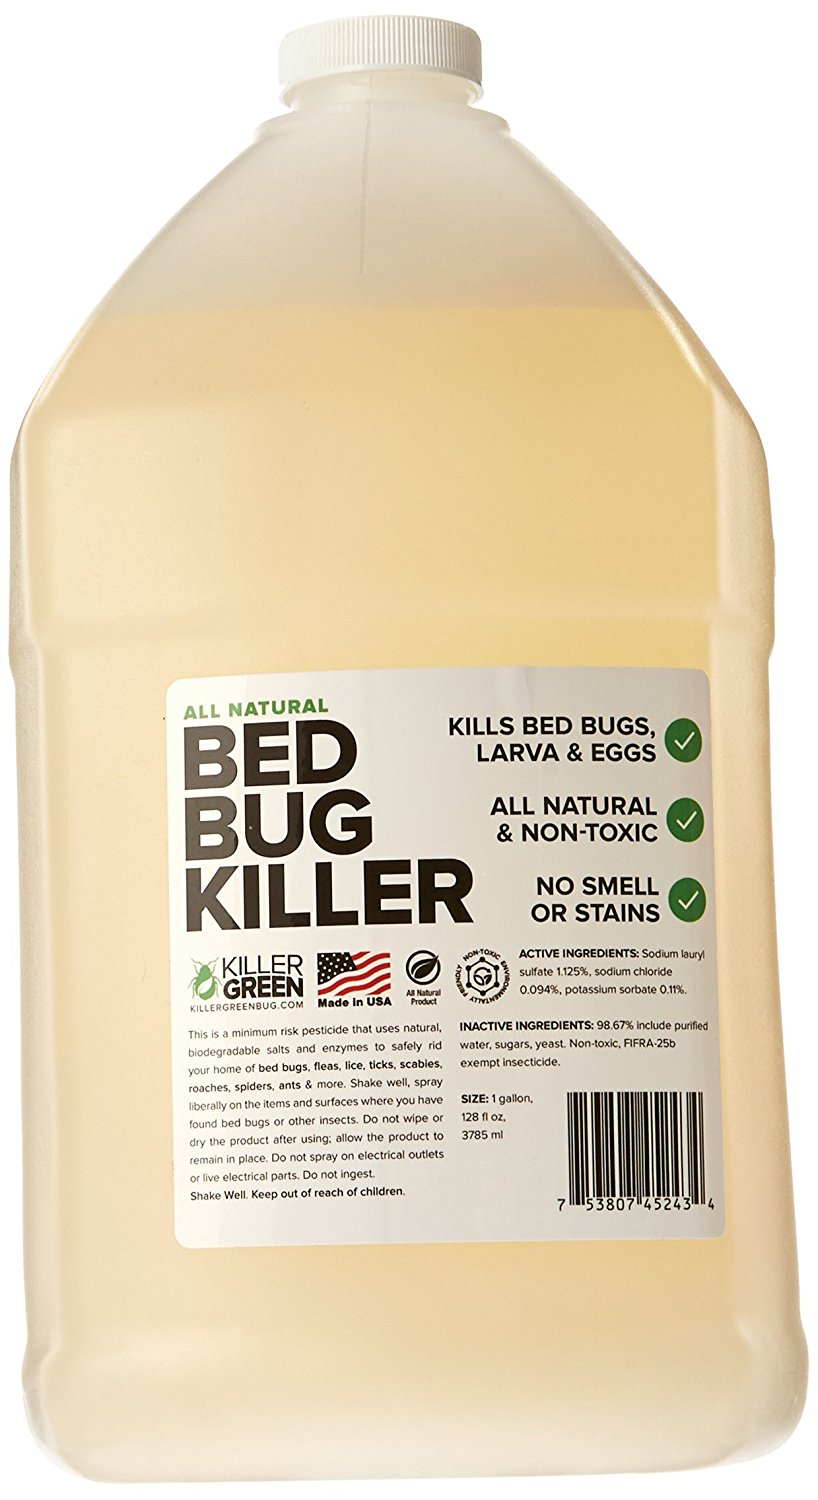 6. Bed Bug Spray By Killer Green